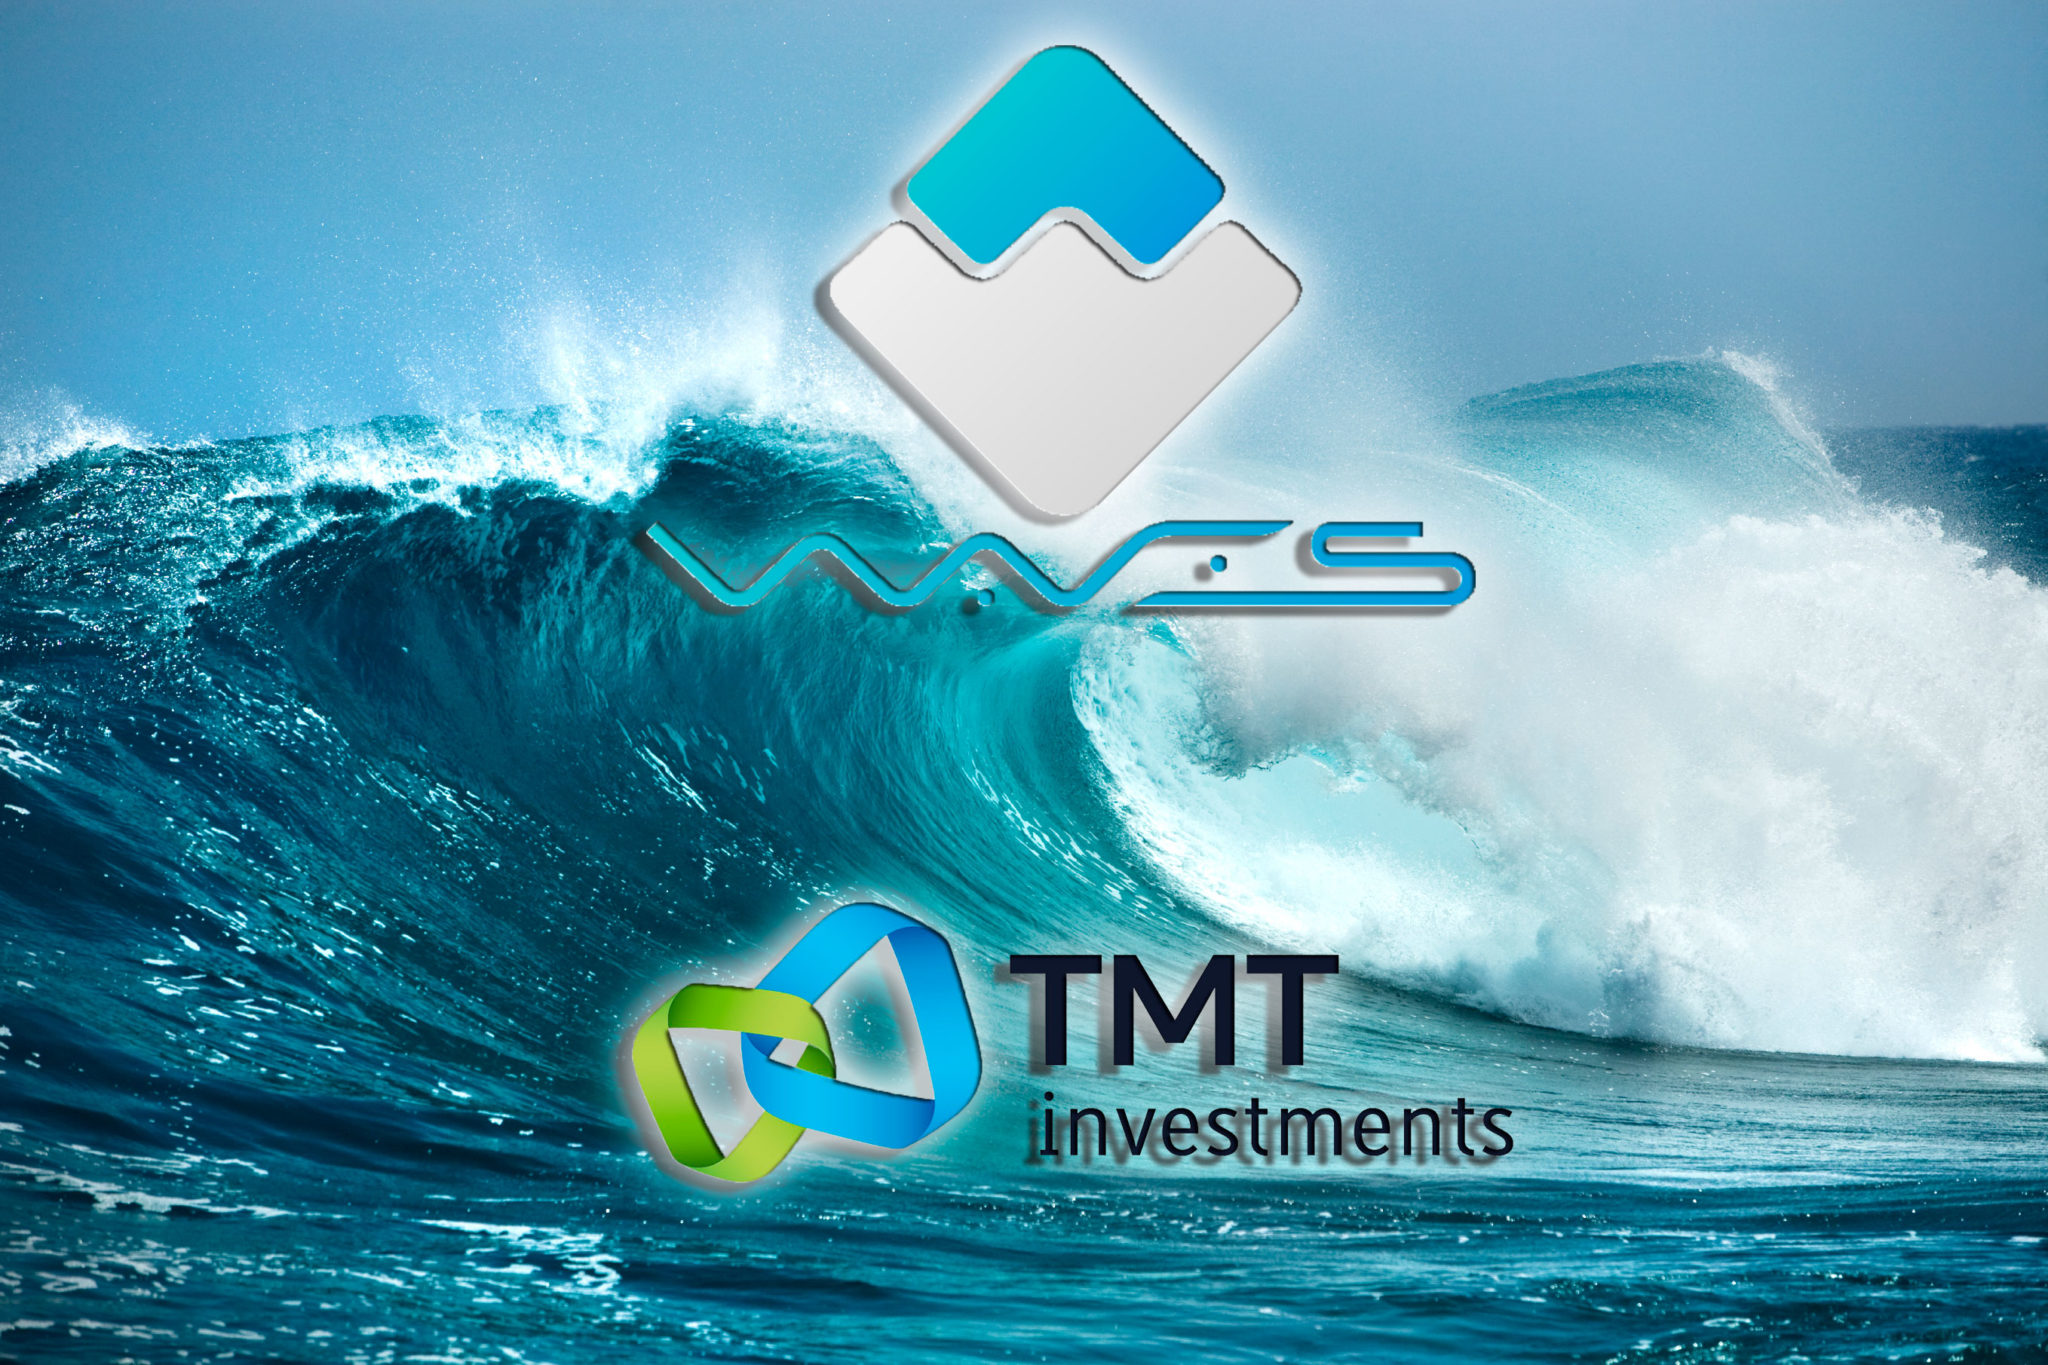 Waves Platform TMT Investments